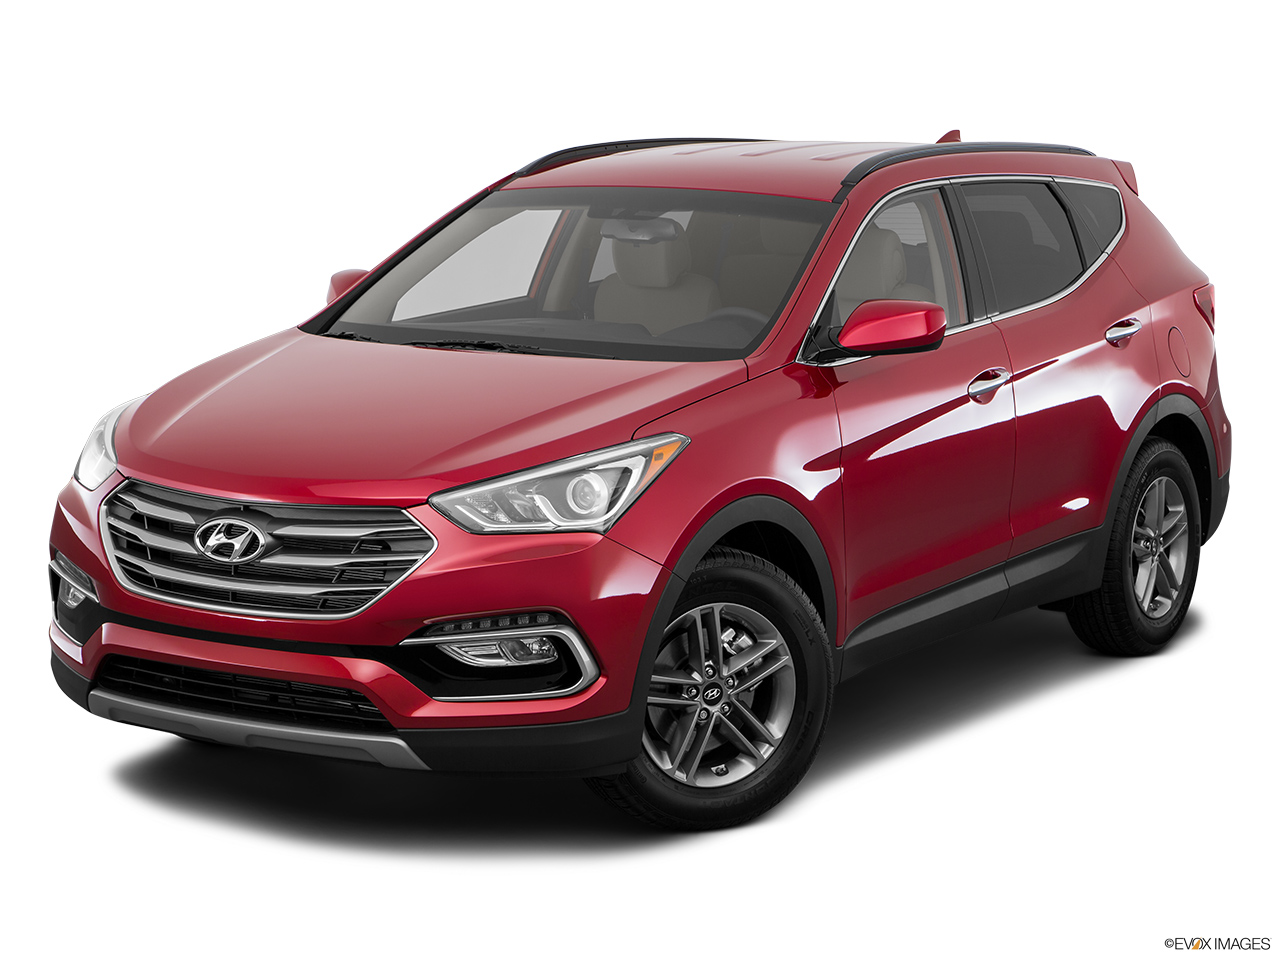 2017 hyundai santa fe prices in oman gulf specs reviews for muscat yallamotor. Black Bedroom Furniture Sets. Home Design Ideas